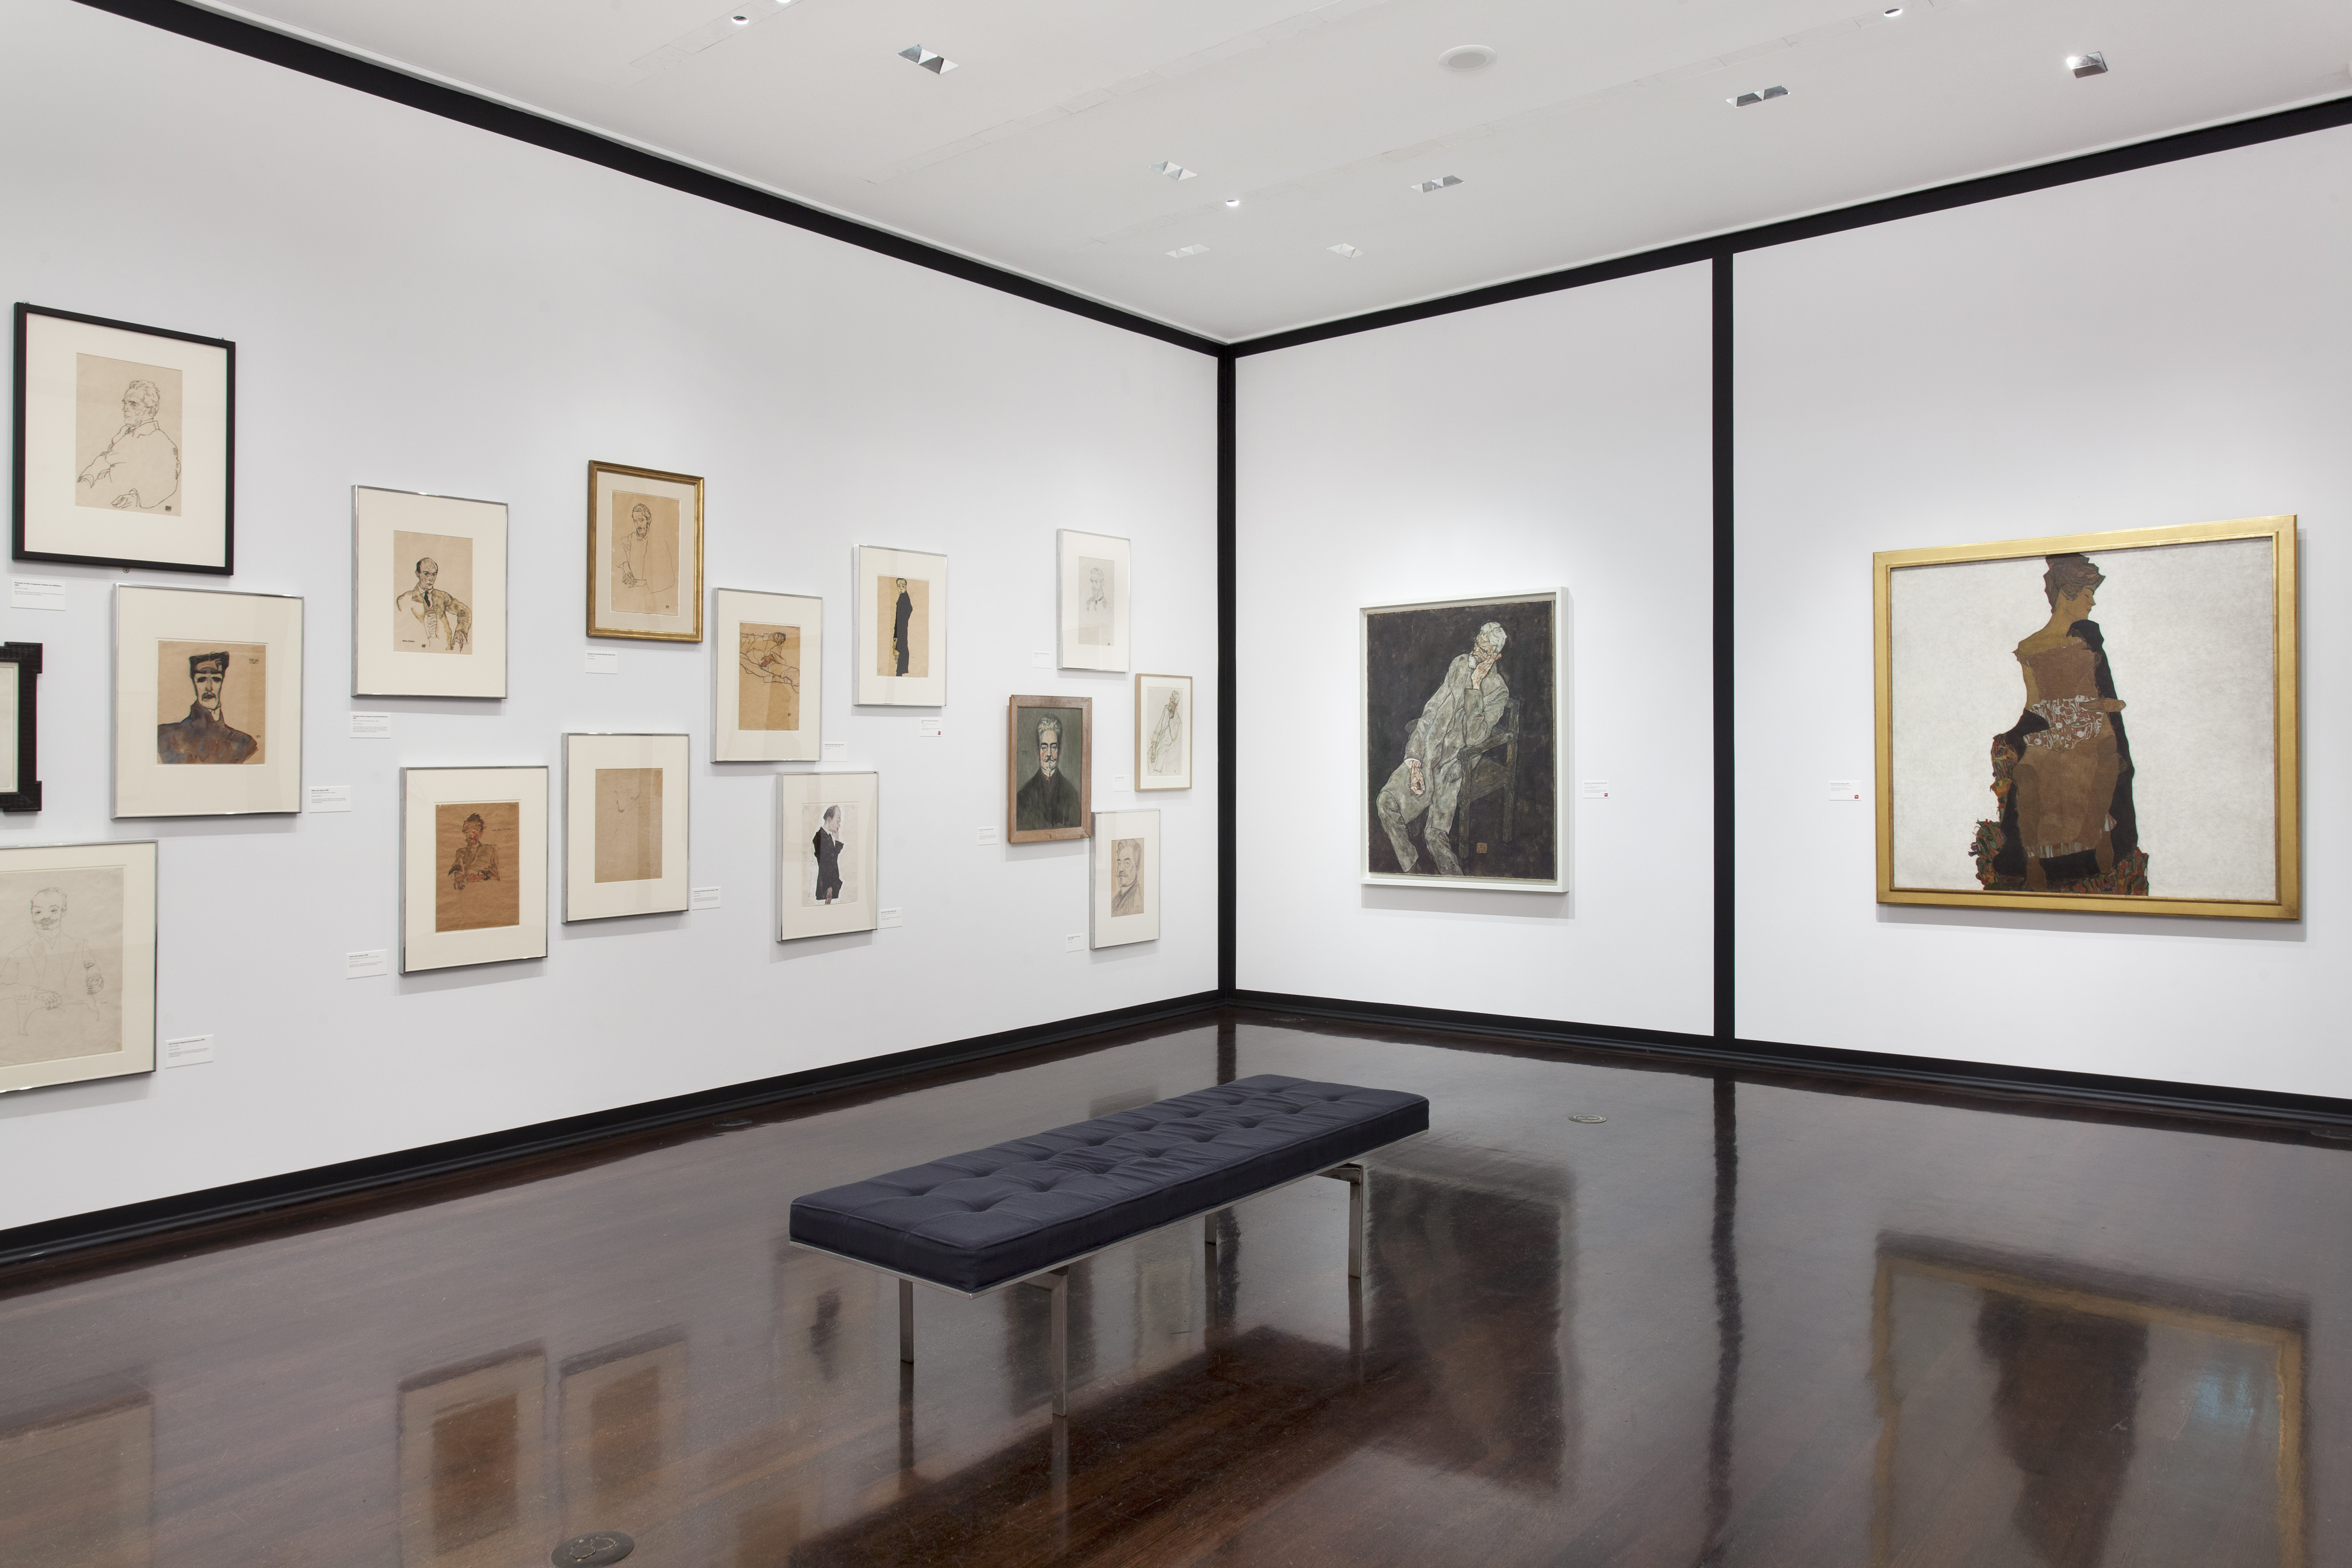 Installation view of Egon Schiele: Portraits, Neue Galerie, New York, NY (October 9, 2014 - April 20, 2015).